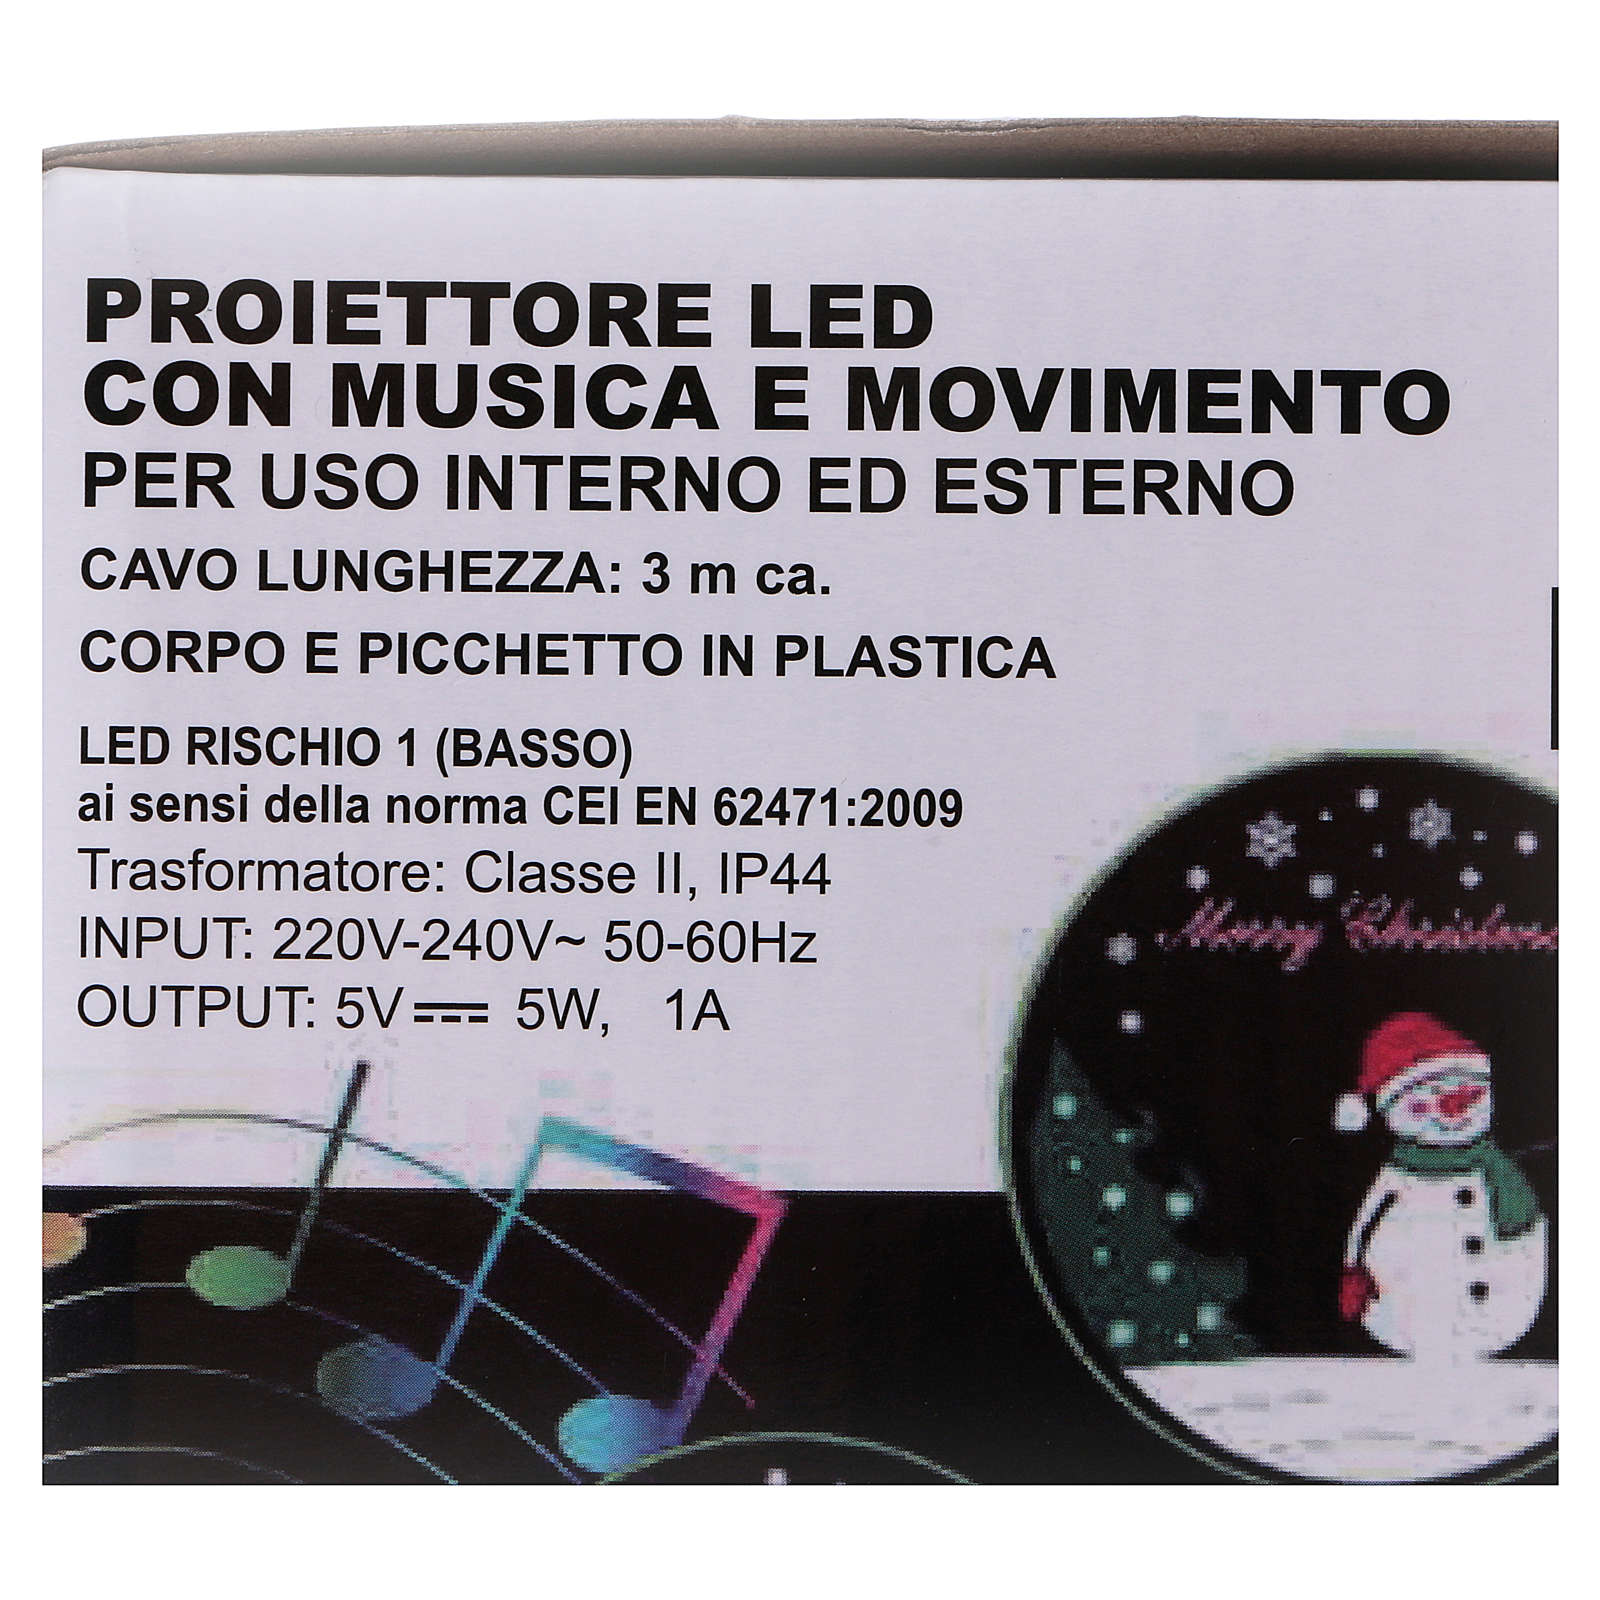 Sleigh LED light projector with music for outdoor use 3